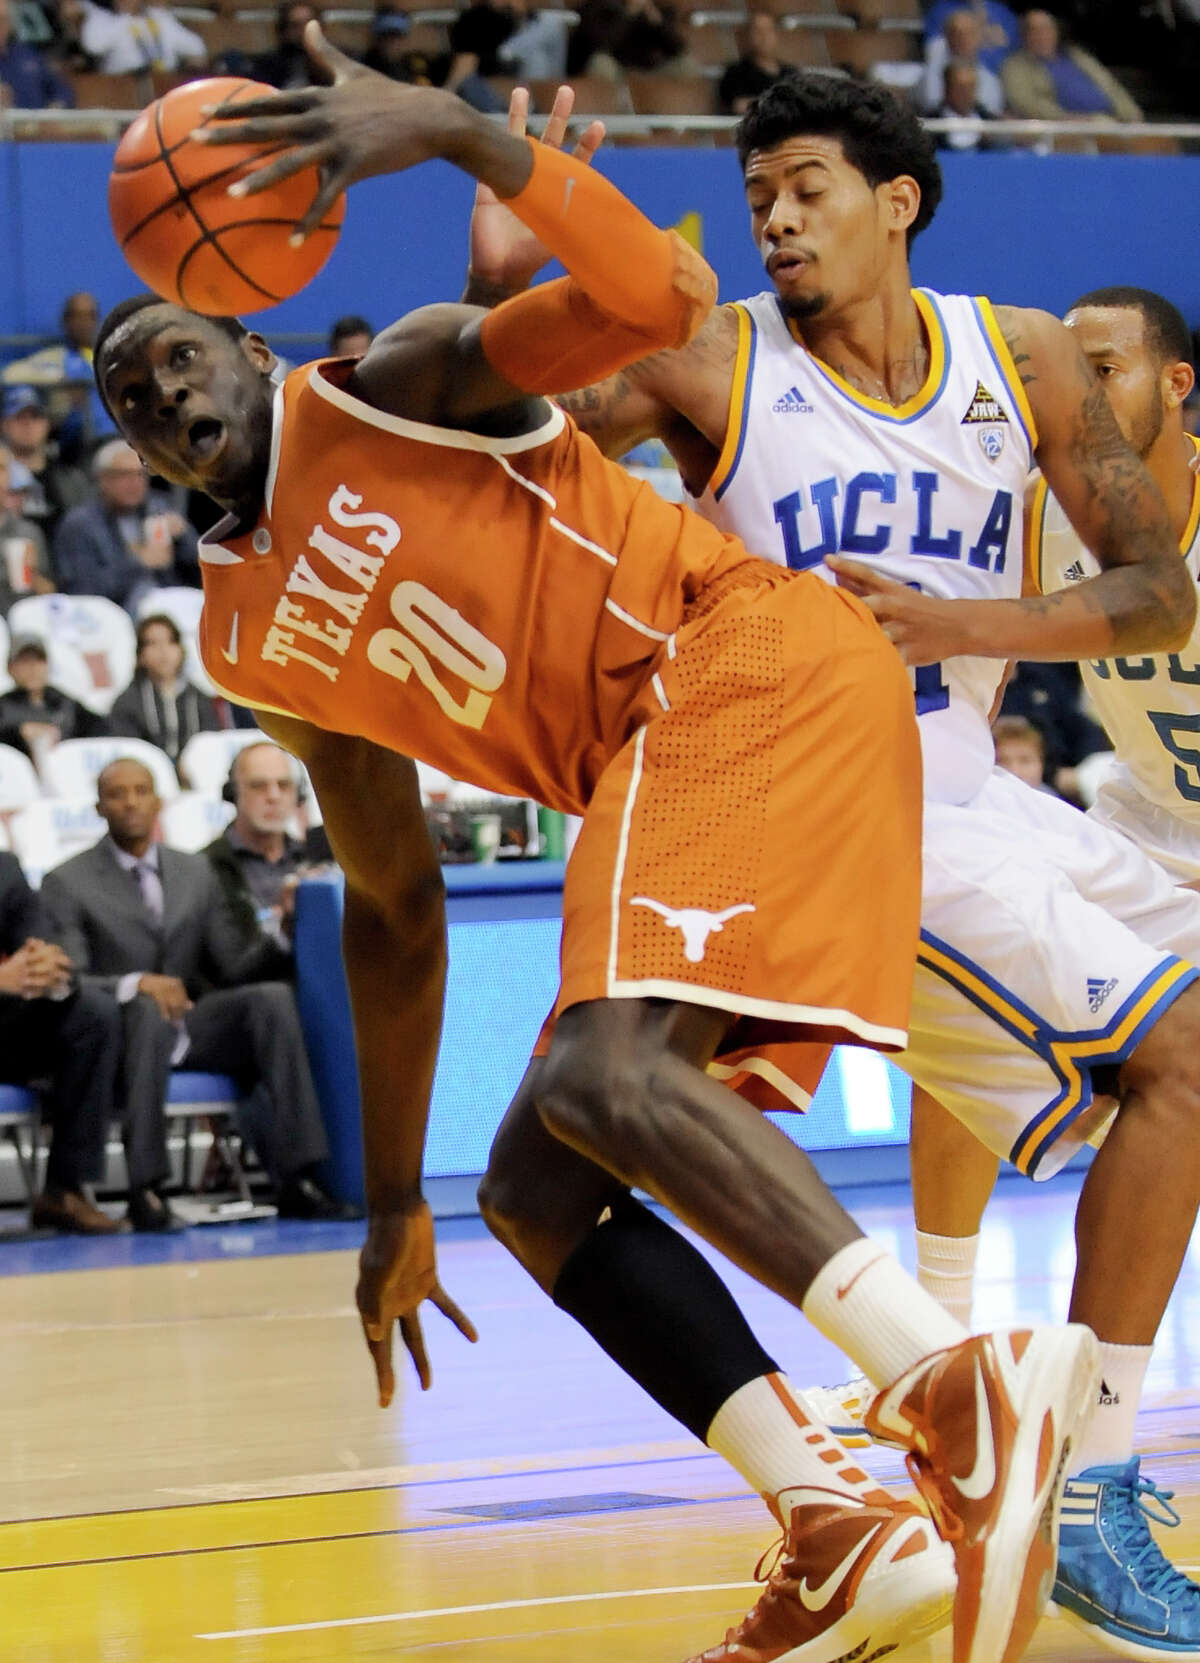 Texas forward/center Alexis Wangmene (20) and UCLA guard Tyler Lamb, right, fight for a loose ball during the first half of an NCAA college basketball game on Saturday, Dec. 3, 2011, in Los Angeles.